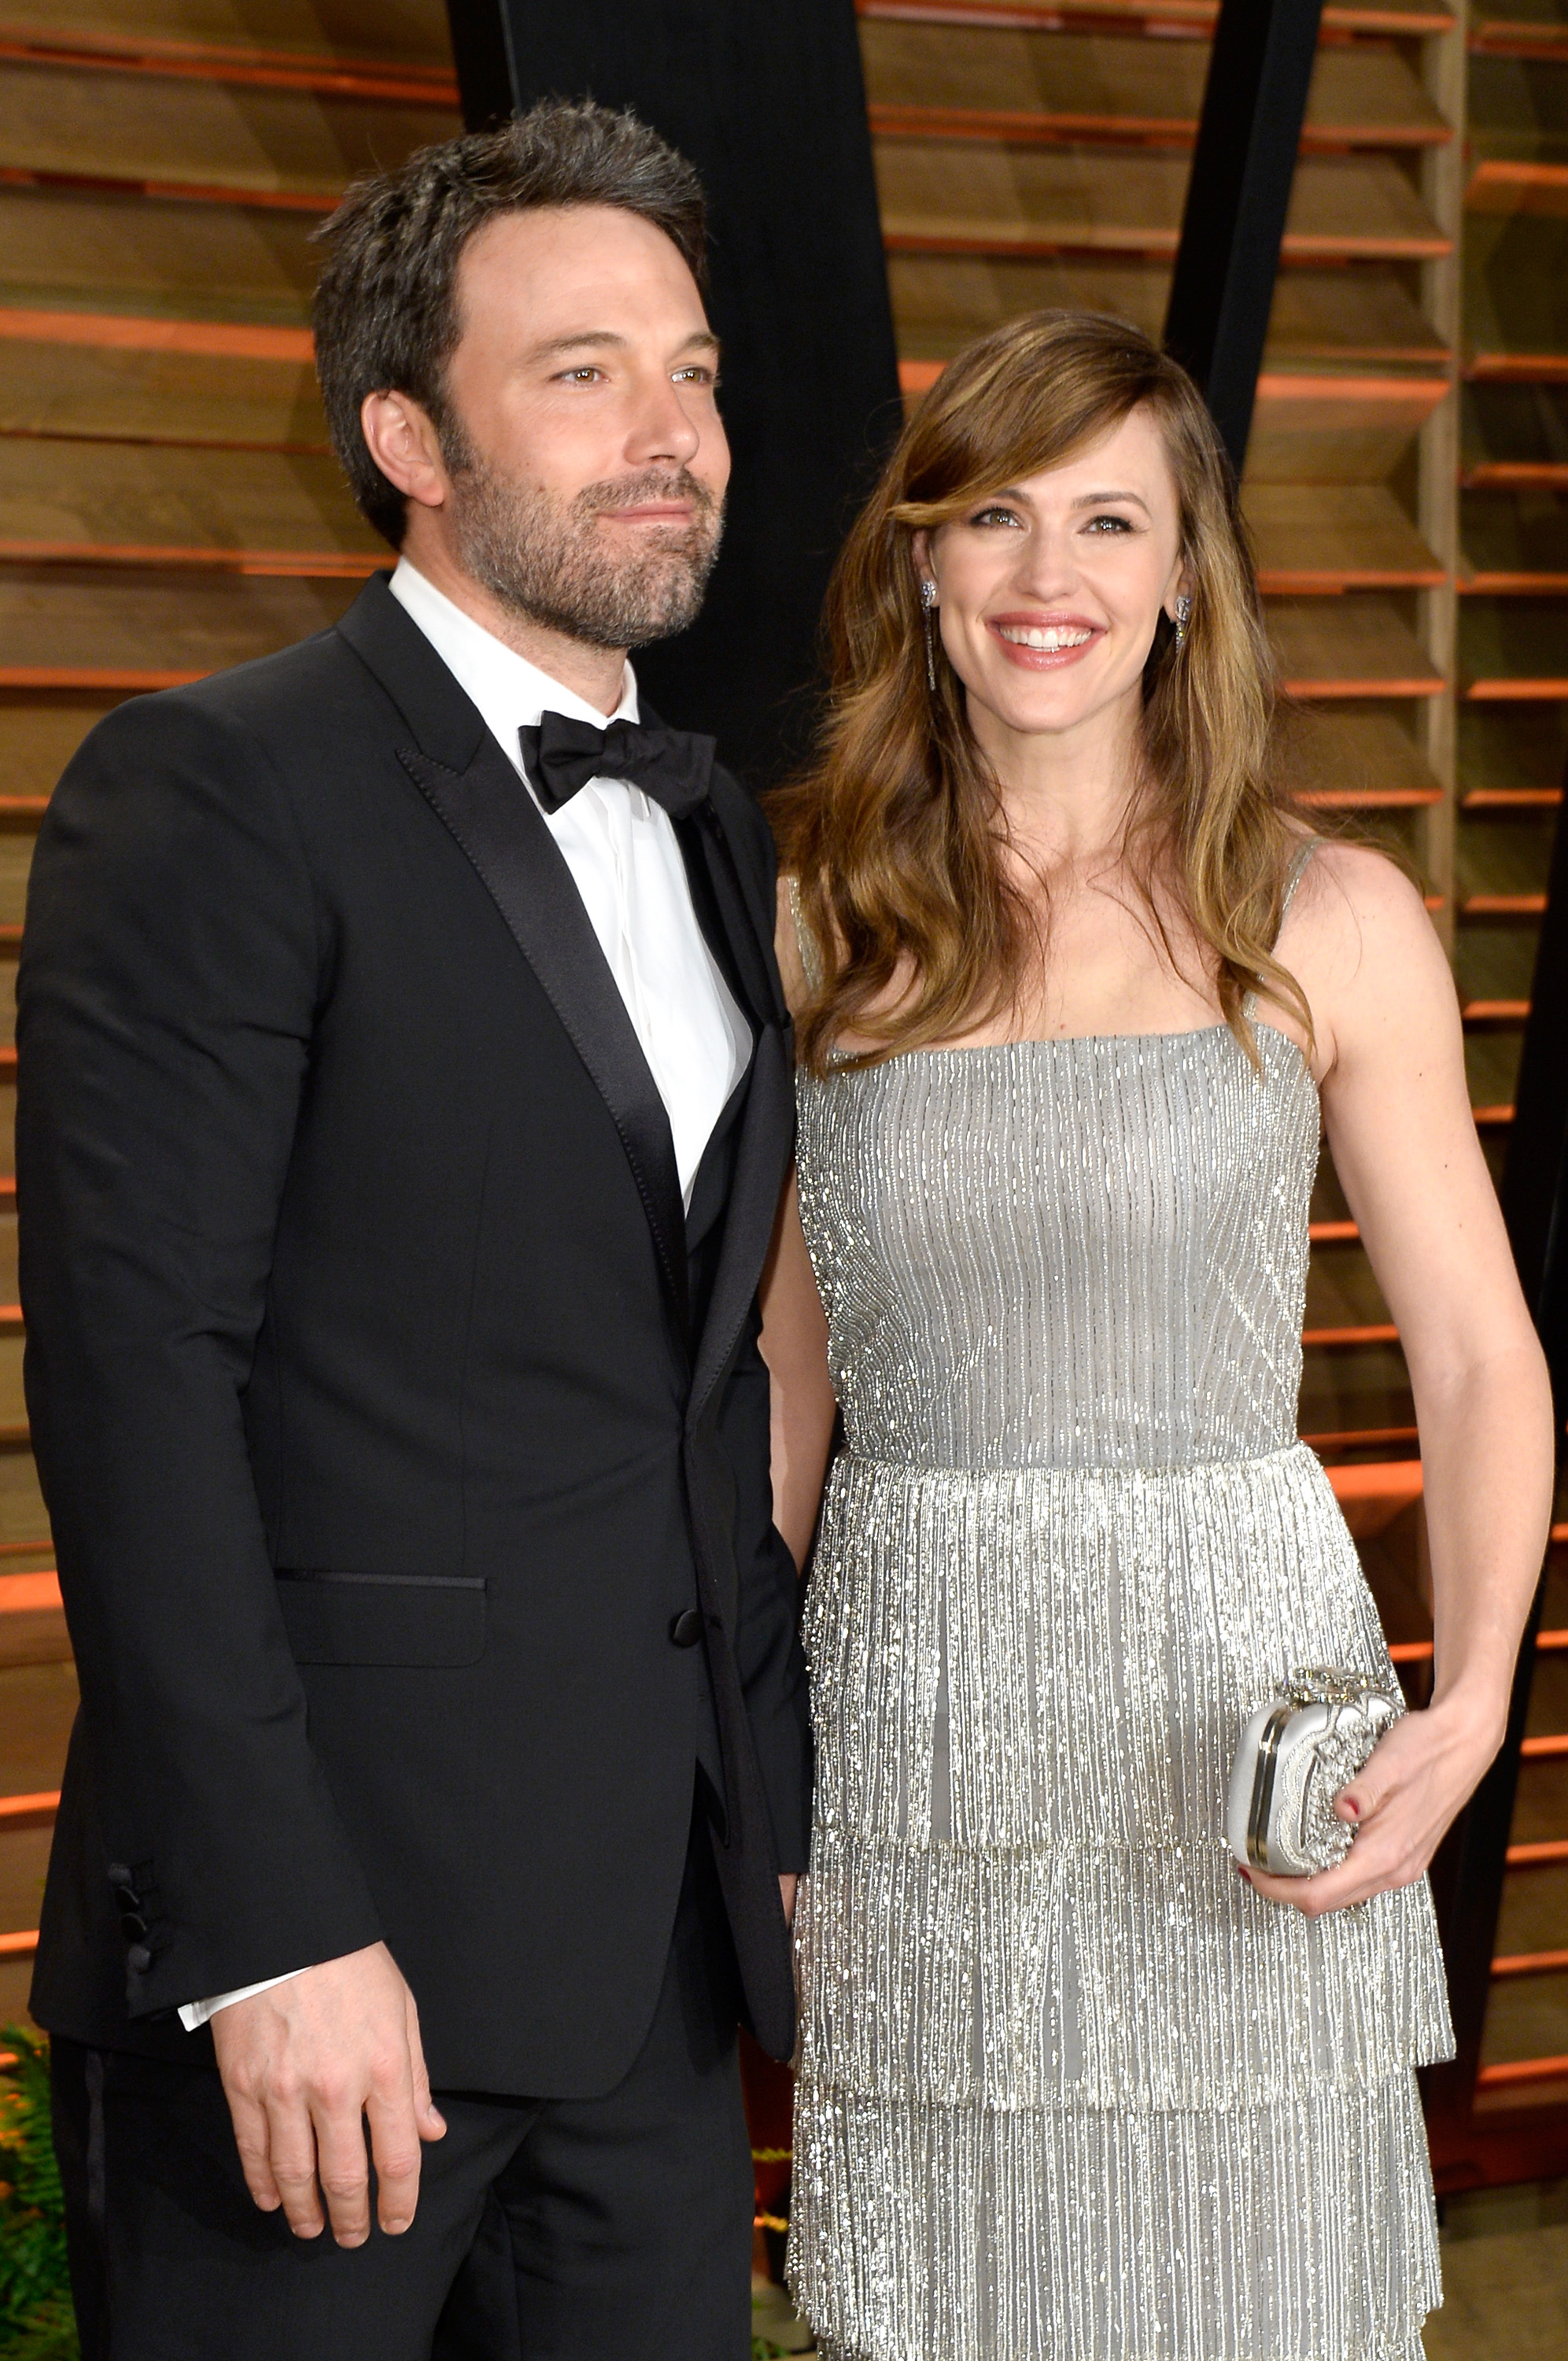 Actors Ben Affleck (L) and Jennifer Garner attend the 2014 Vanity Fair Oscar Party hosted by Graydon Carter on March 2, 2014, in West Hollywood, California. (Getty Images)